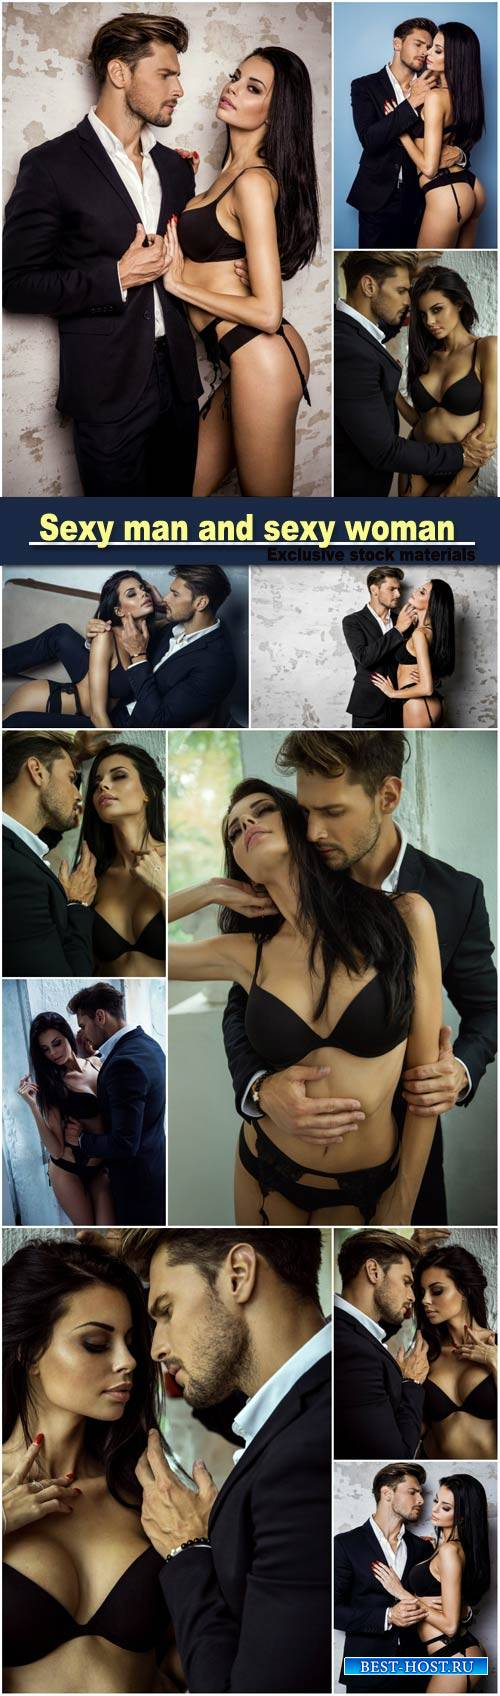 Portrait of sexy man in black suit touching sexy woman in lingerie